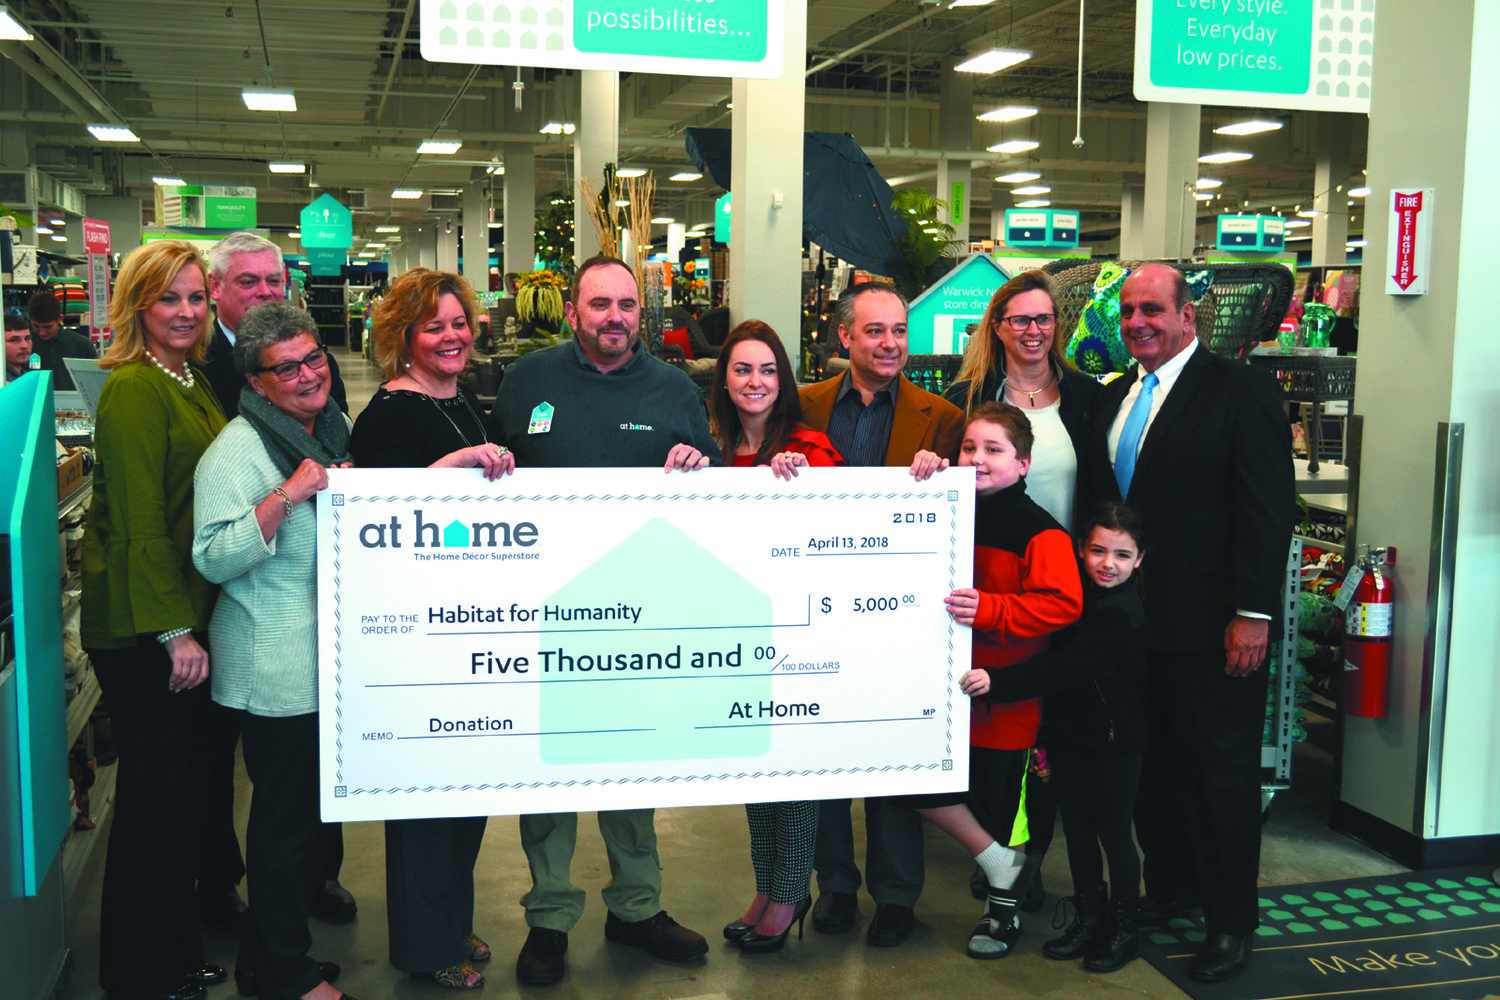 FOR A GOOD CAUSE: At Home's corporate offices donated $5,000 to the local branch of Habitat for Humanity, and the store's employees kicked in another $500.